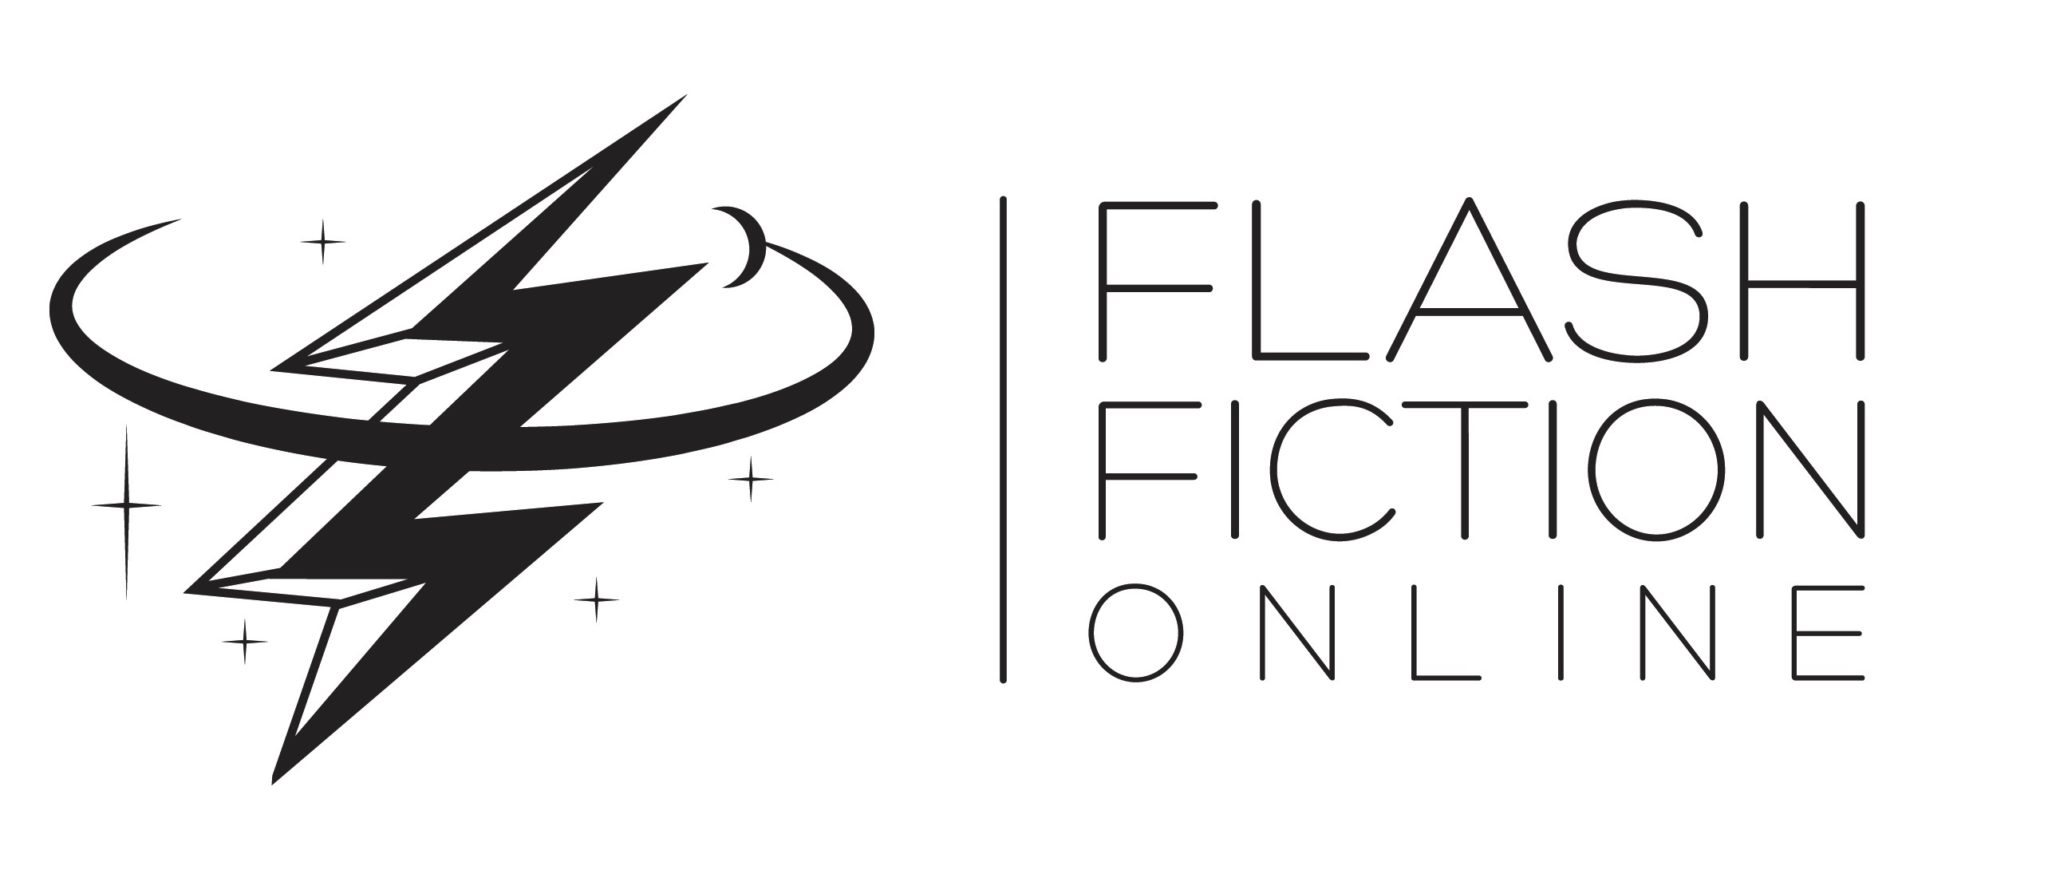 The Hollywood Formula – How to Write Flash Fiction With Style!